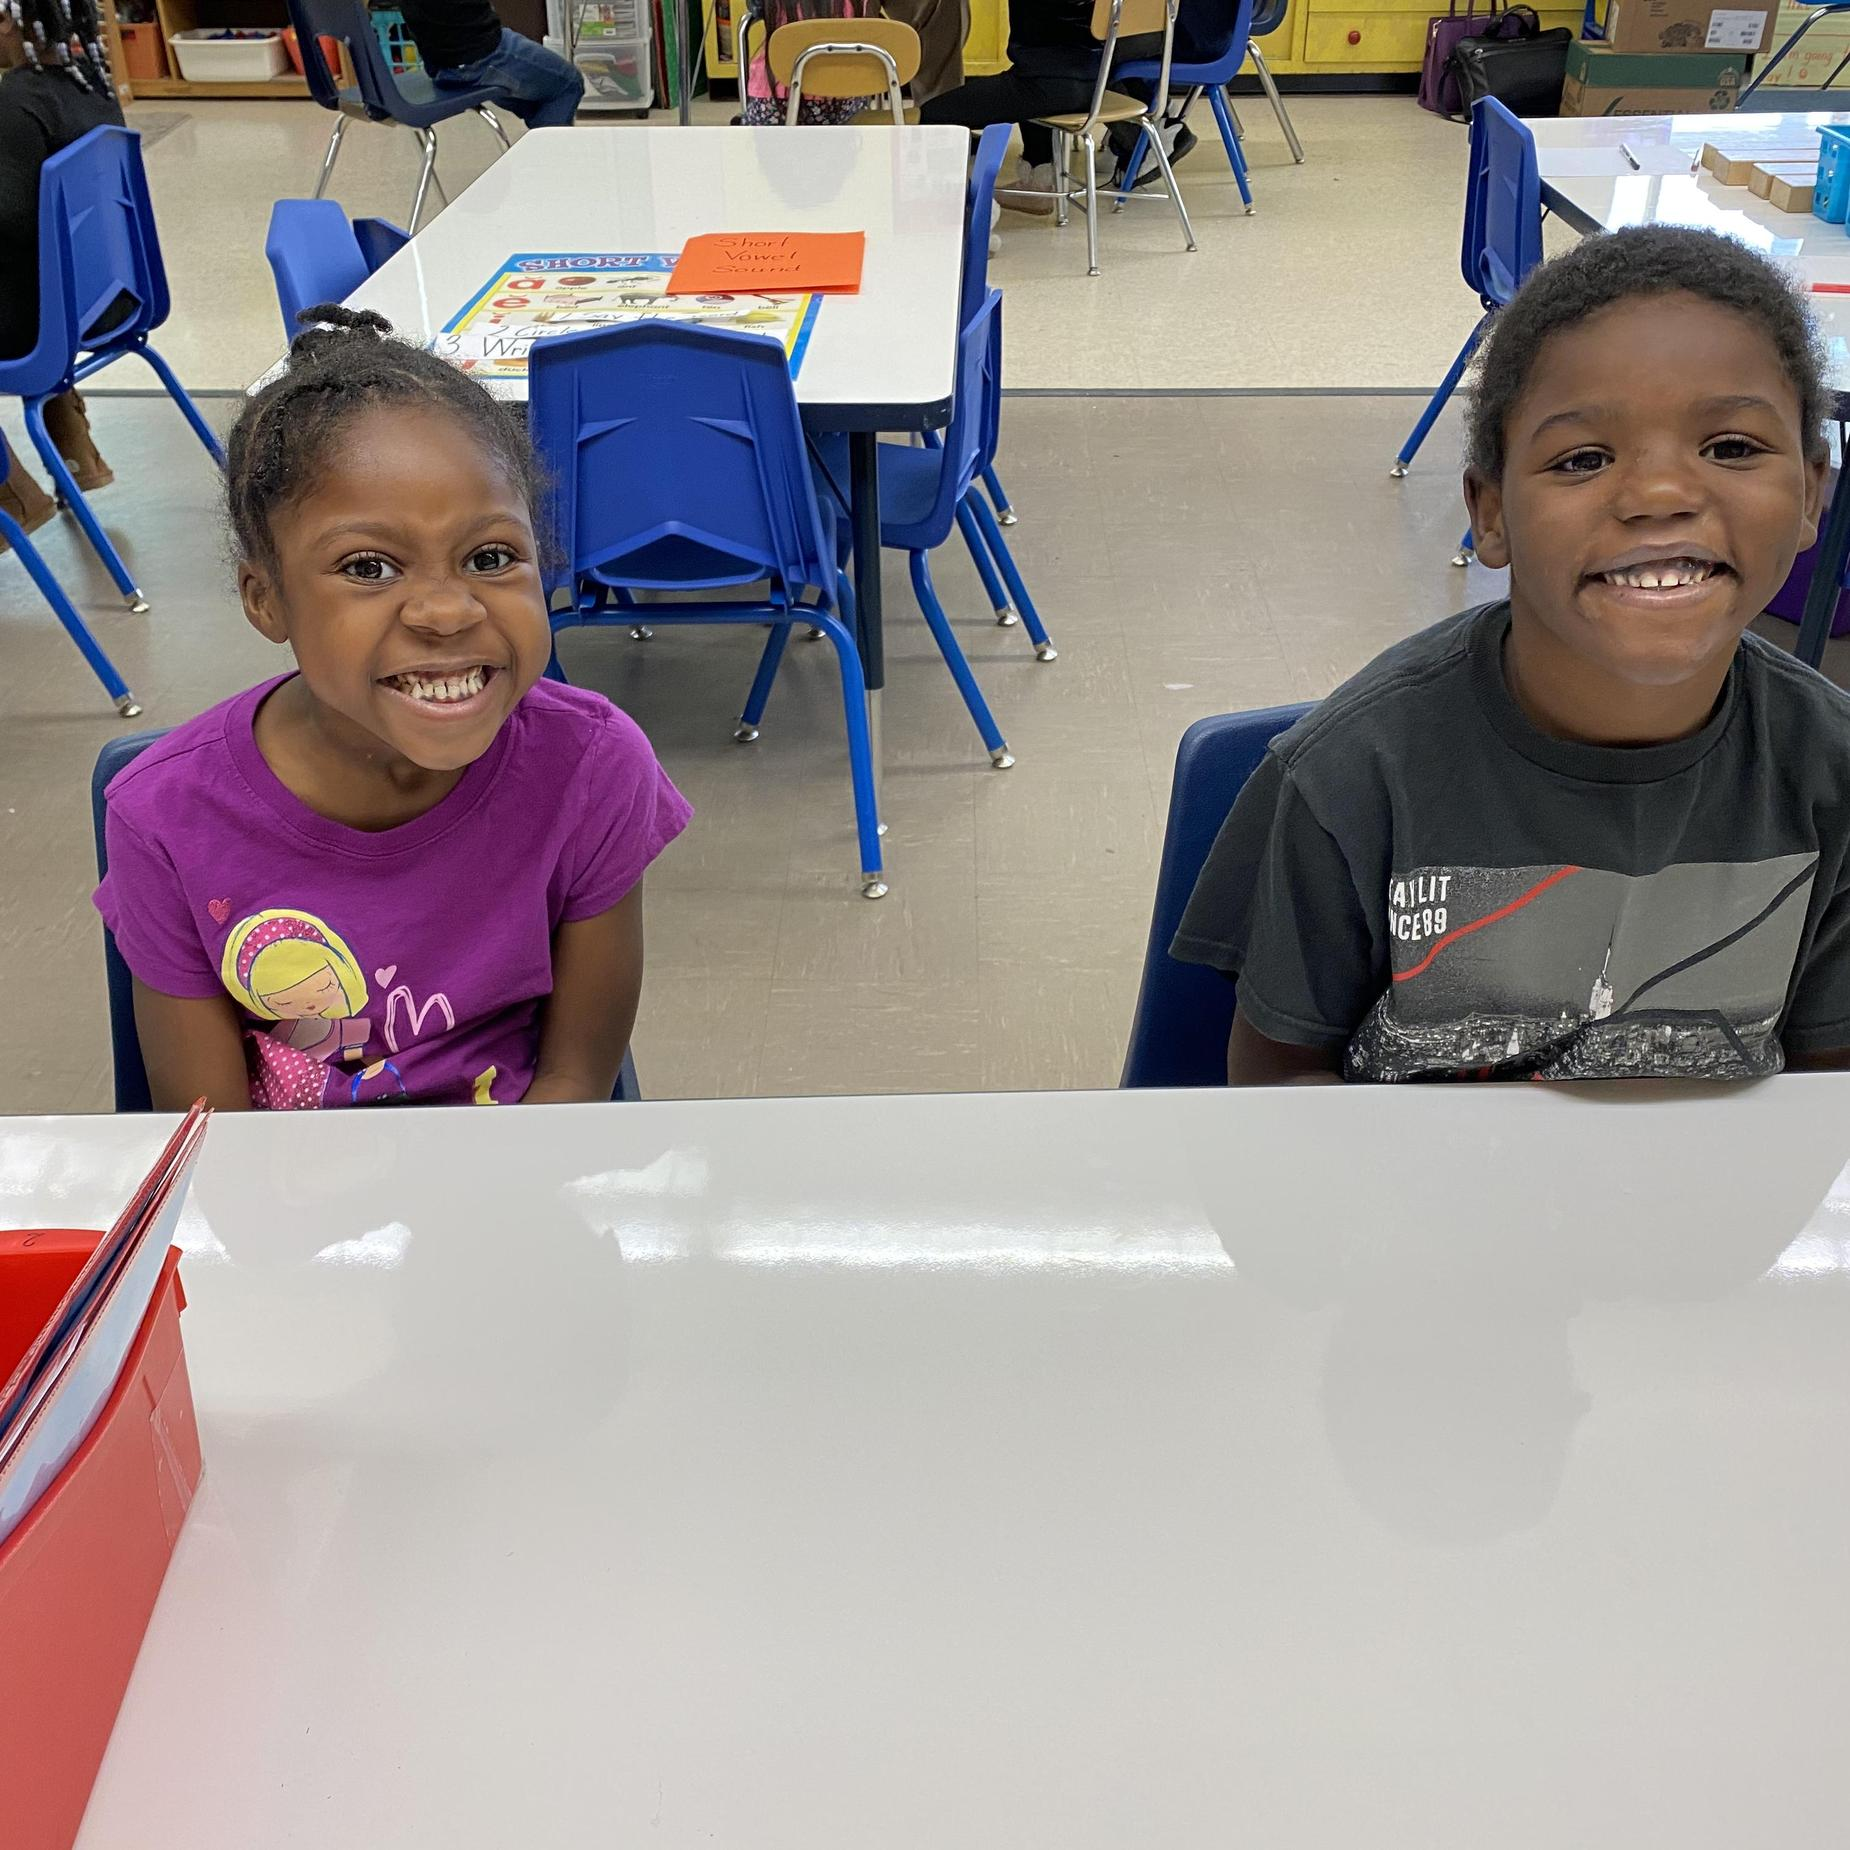 Two students smiling.